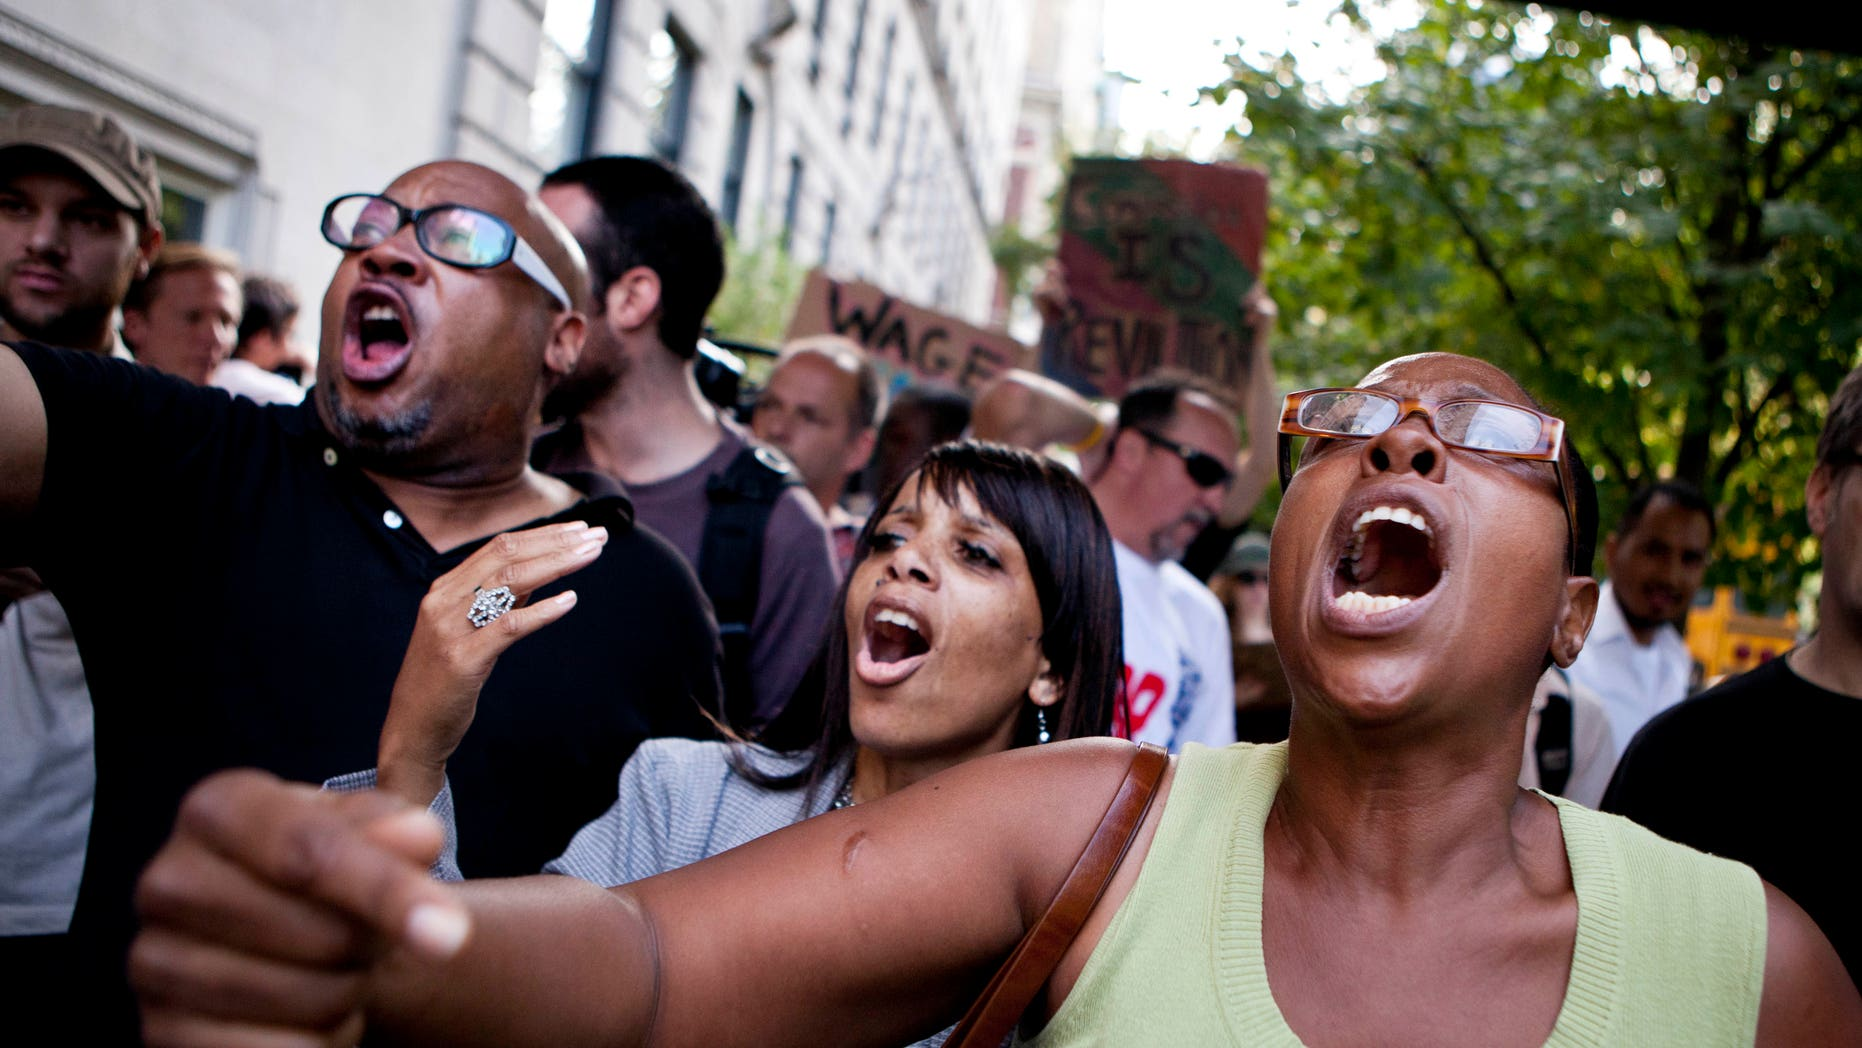 """Protestors affiliated with the """"Occupy Wall Street"""" protests chant outside 834 Fifth Avenue, where Rupert Murdoch lives, in New York, on Tuesday, Oct. 11, 2011."""